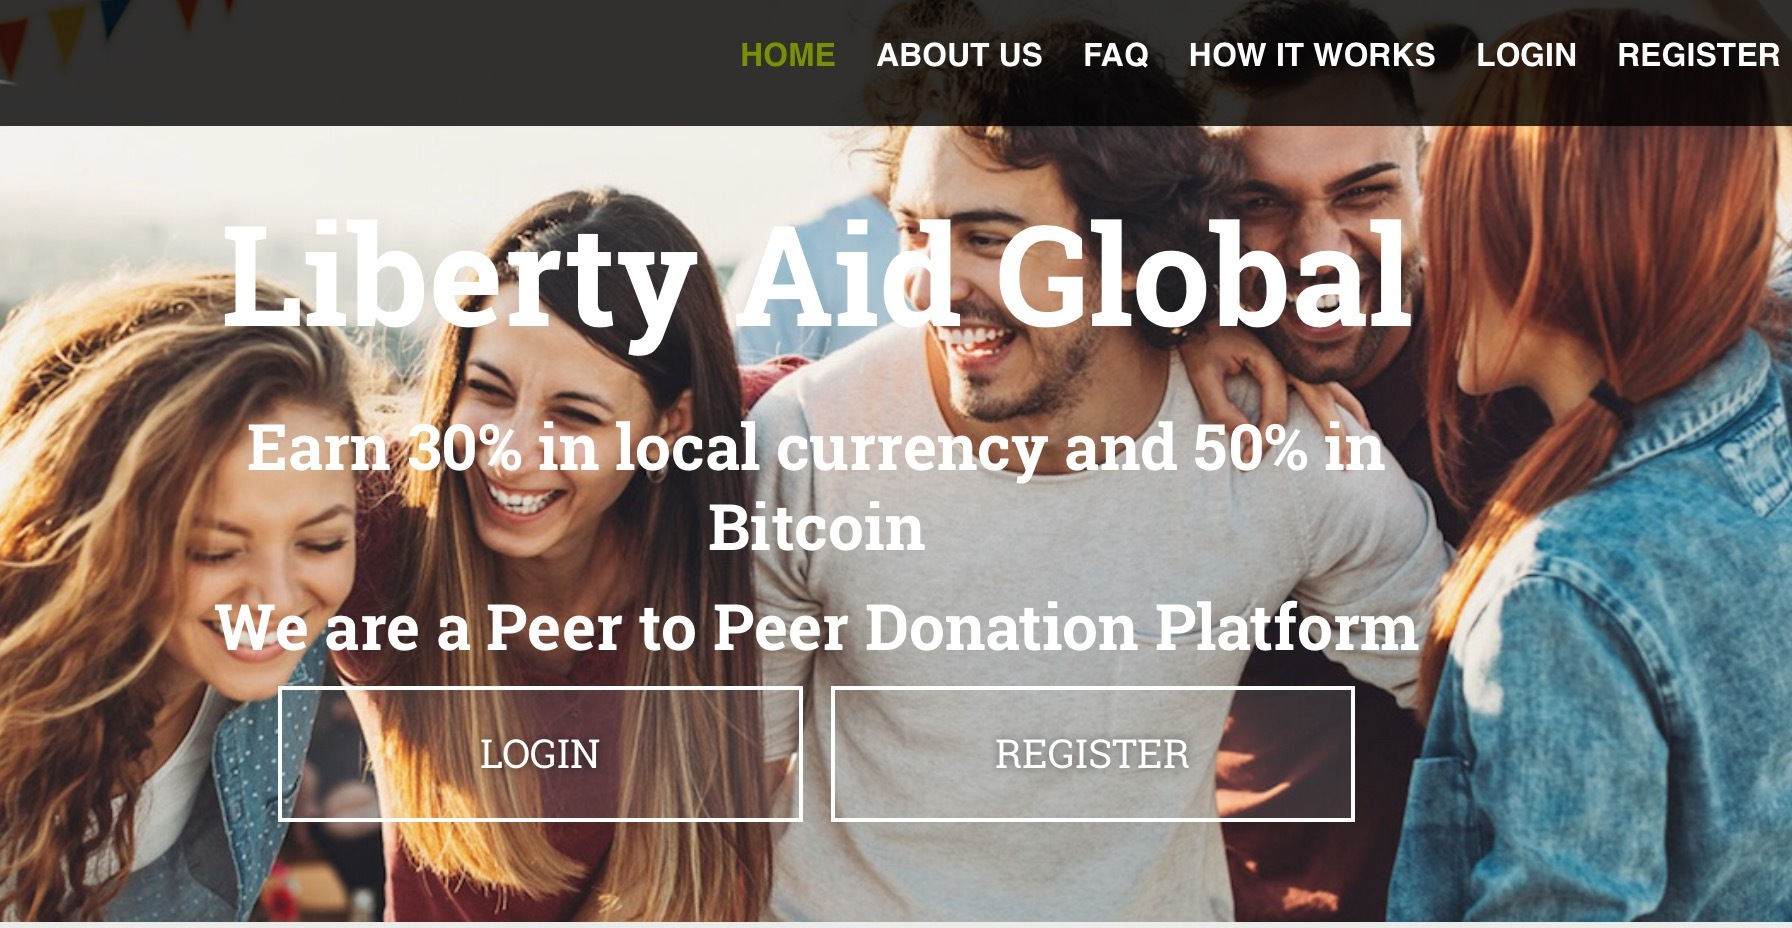 liberty aid profile pic.jpg-Now In Nigeria! Liberty Aid Global